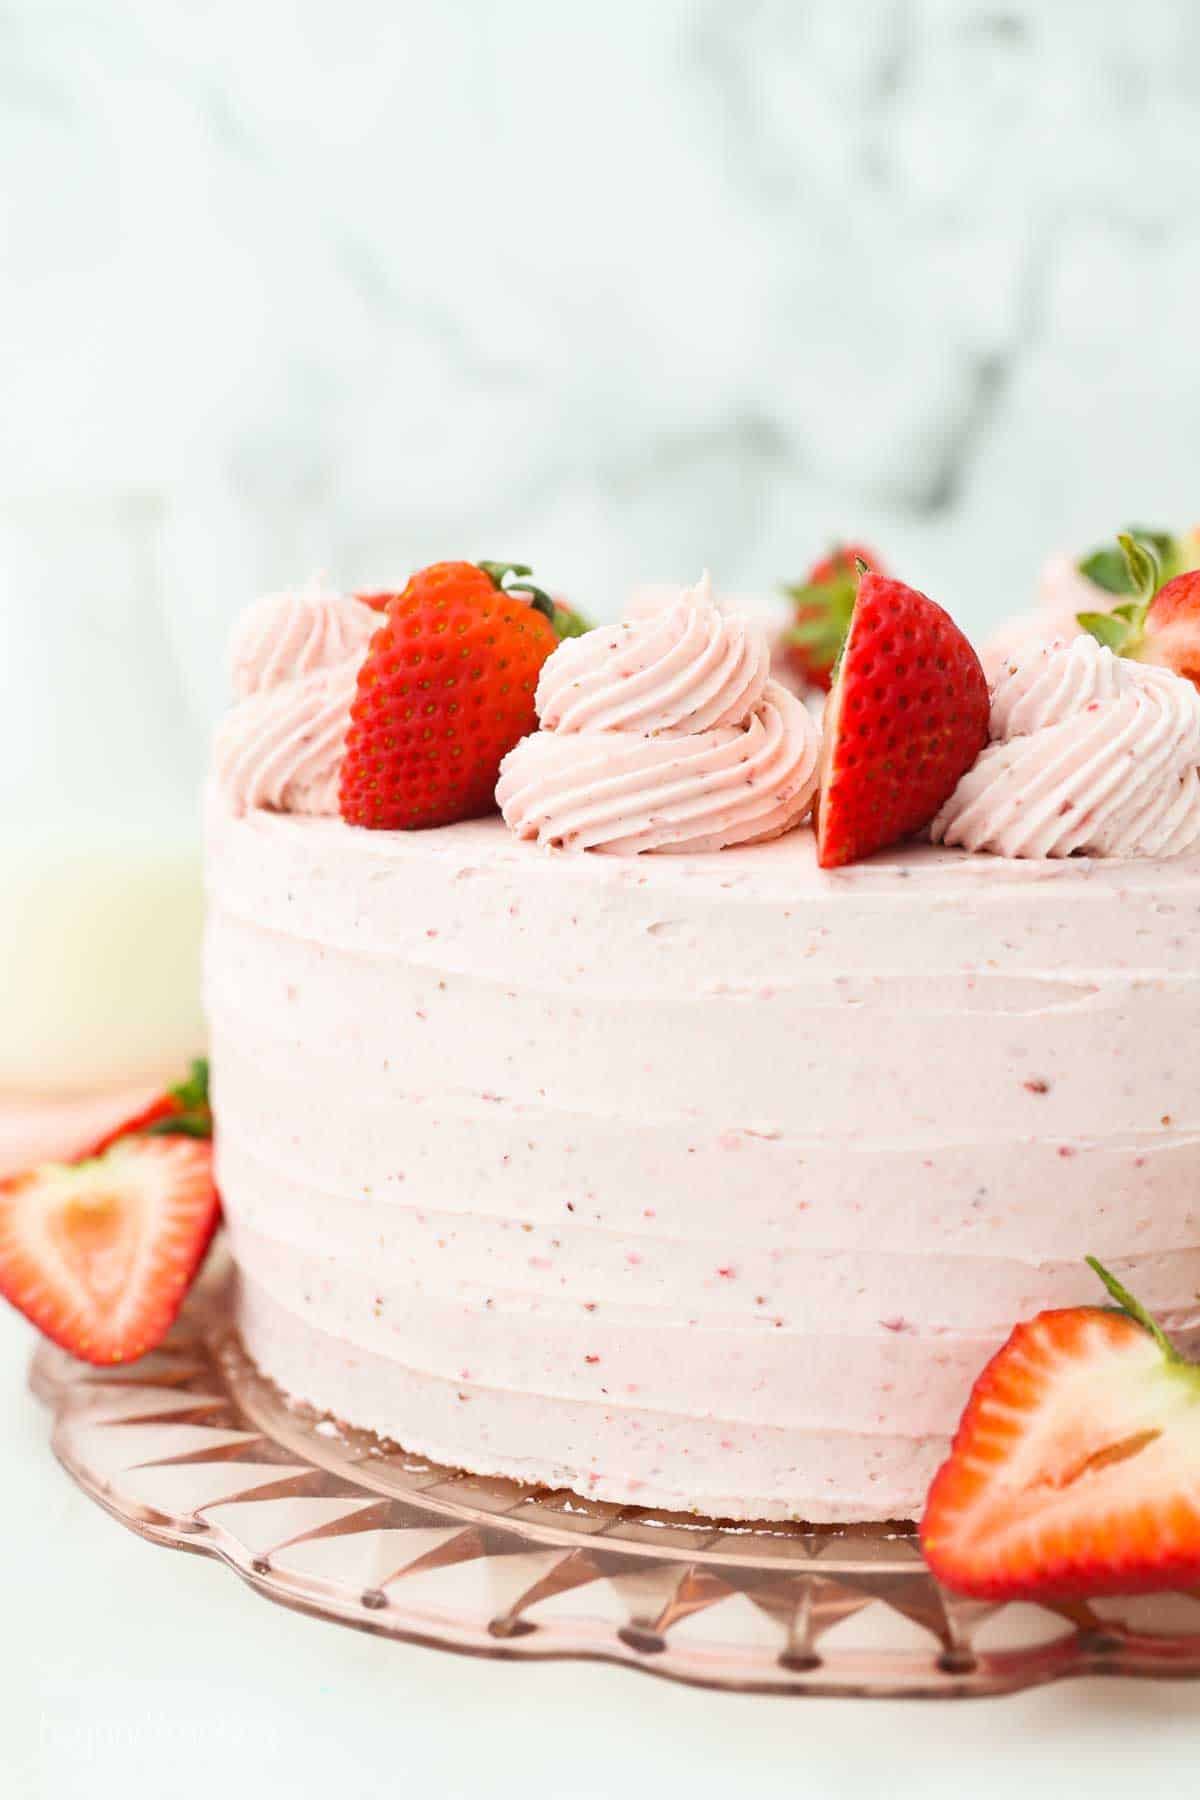 A fully decorated Strawberry Cake with Strawberry frosting, garnished with fresh strawberries.